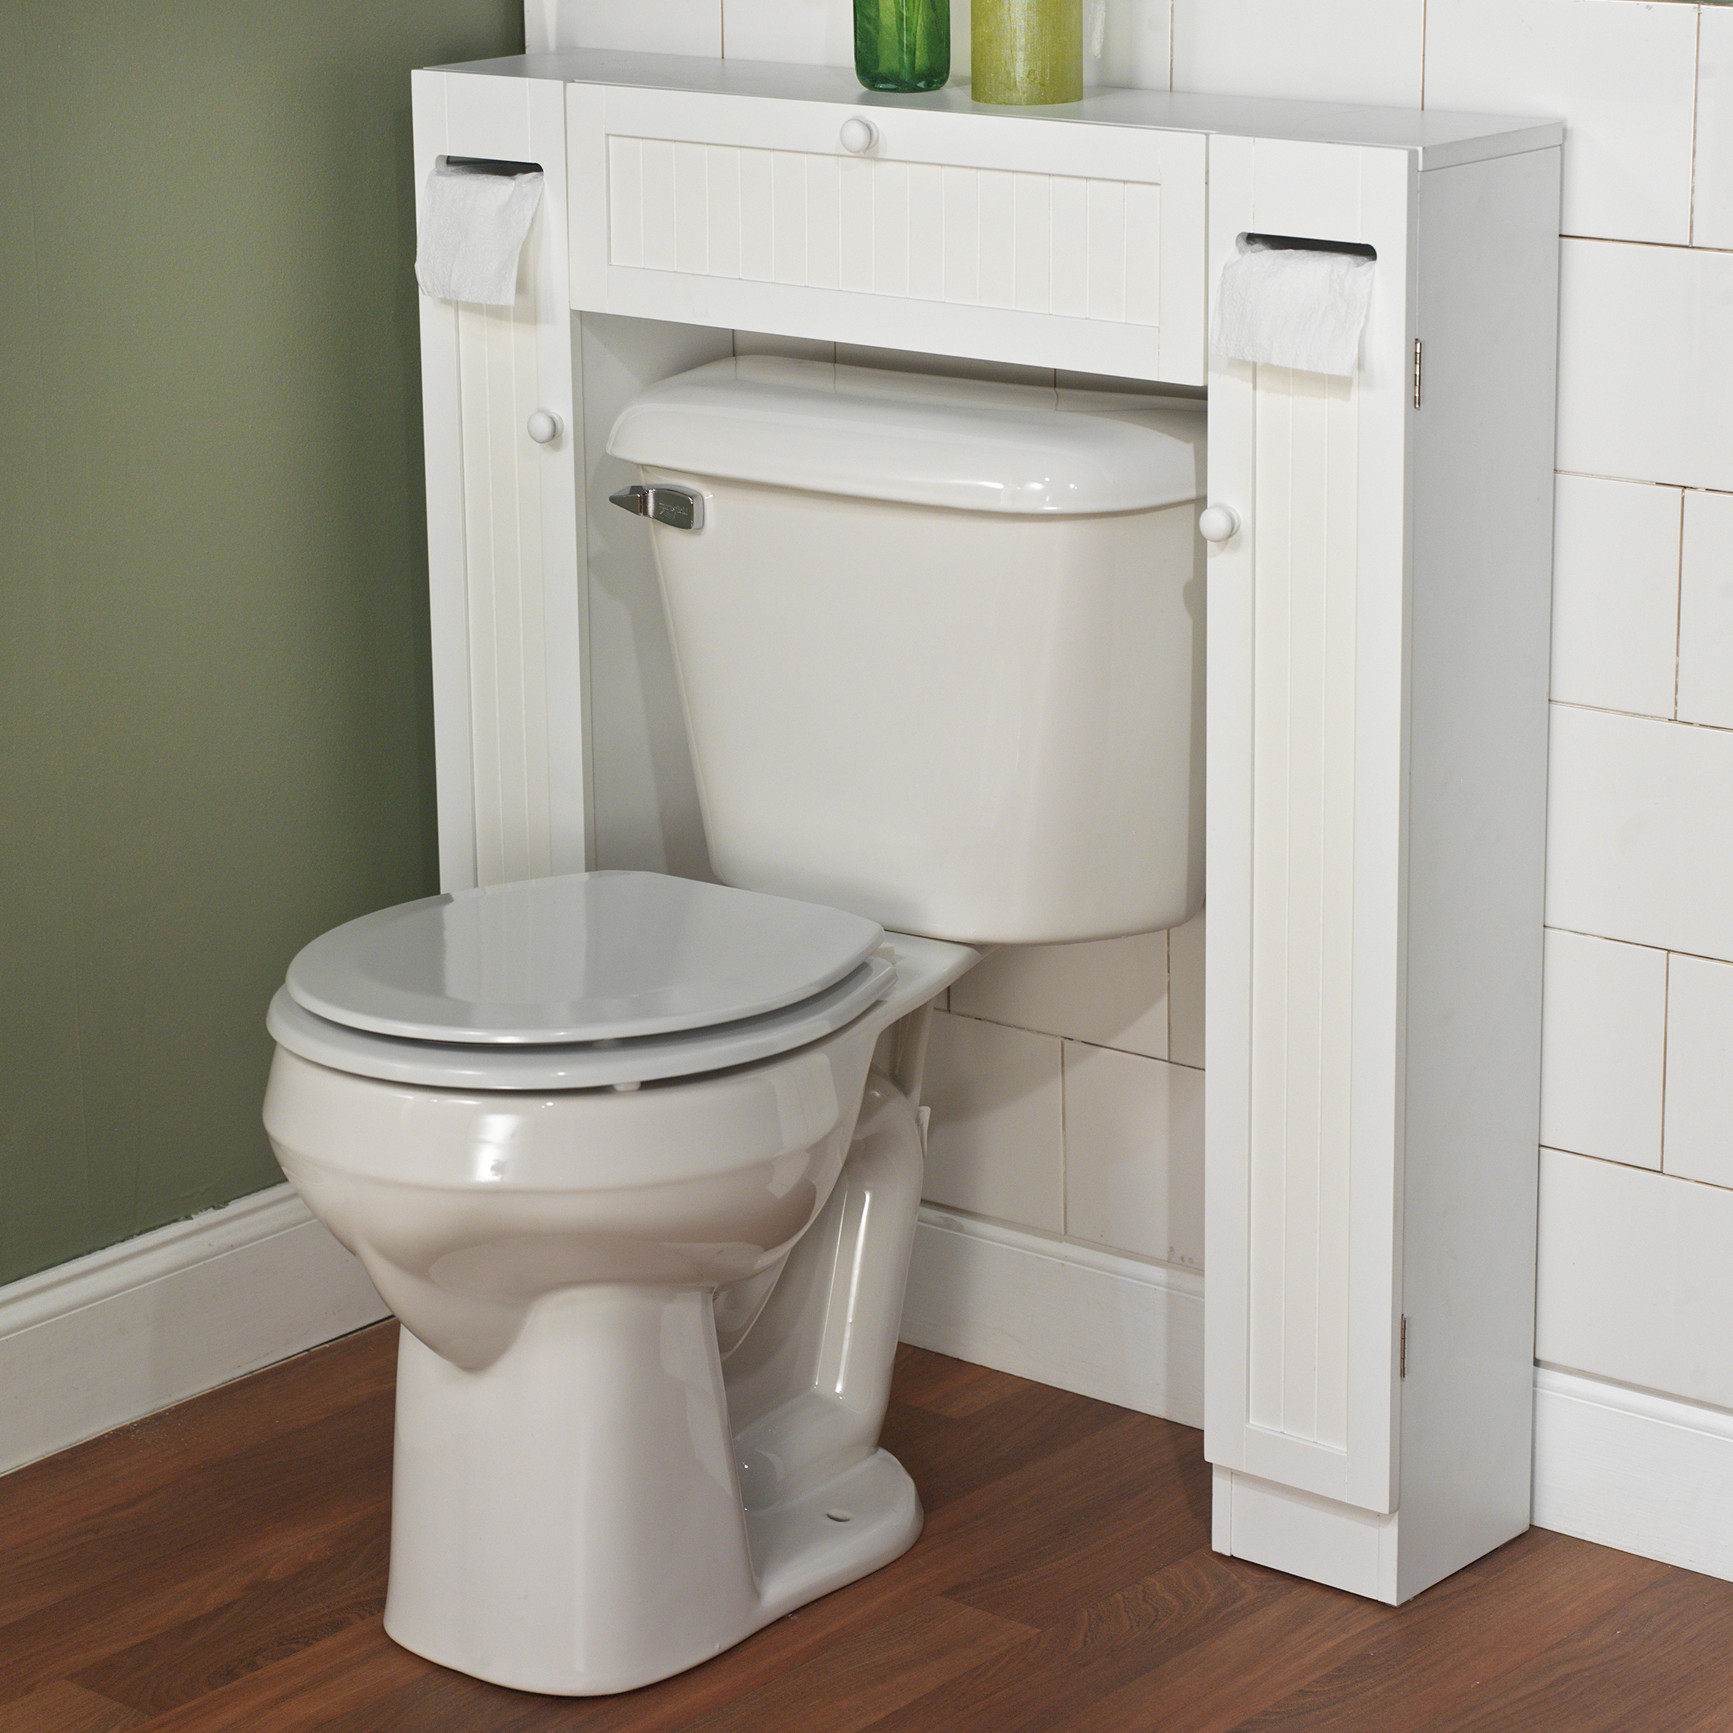 Improbable Home Accents Specially Attractive Bathroom Over intended for dimensions 1733 X 1733